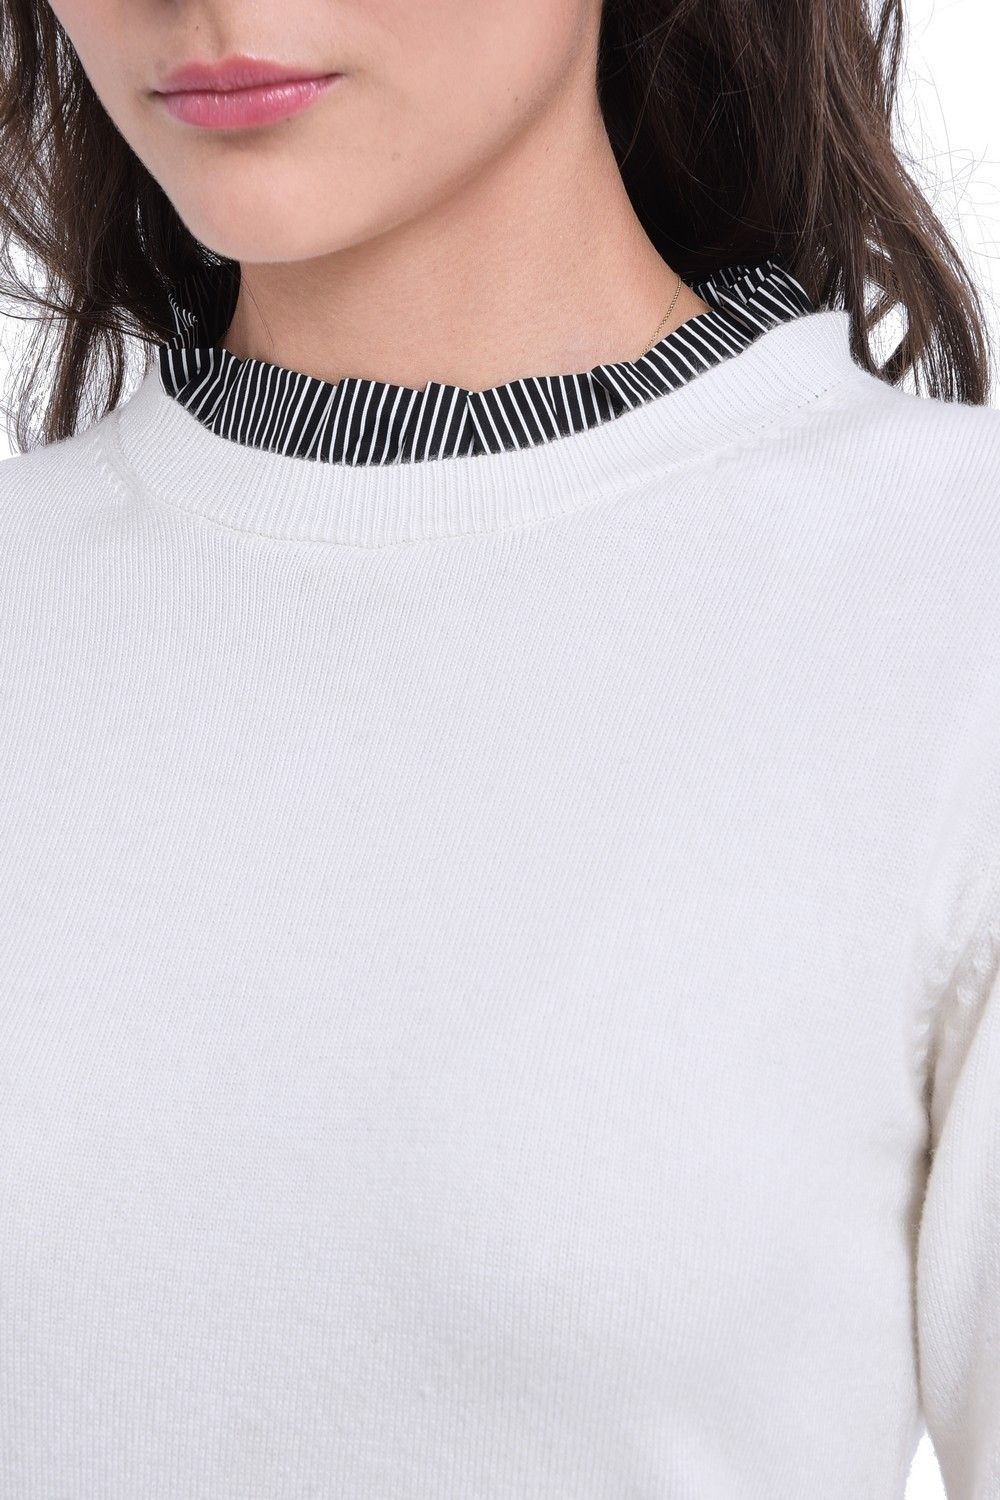 C&JO High Neck Striped Collar Sweater in Natural